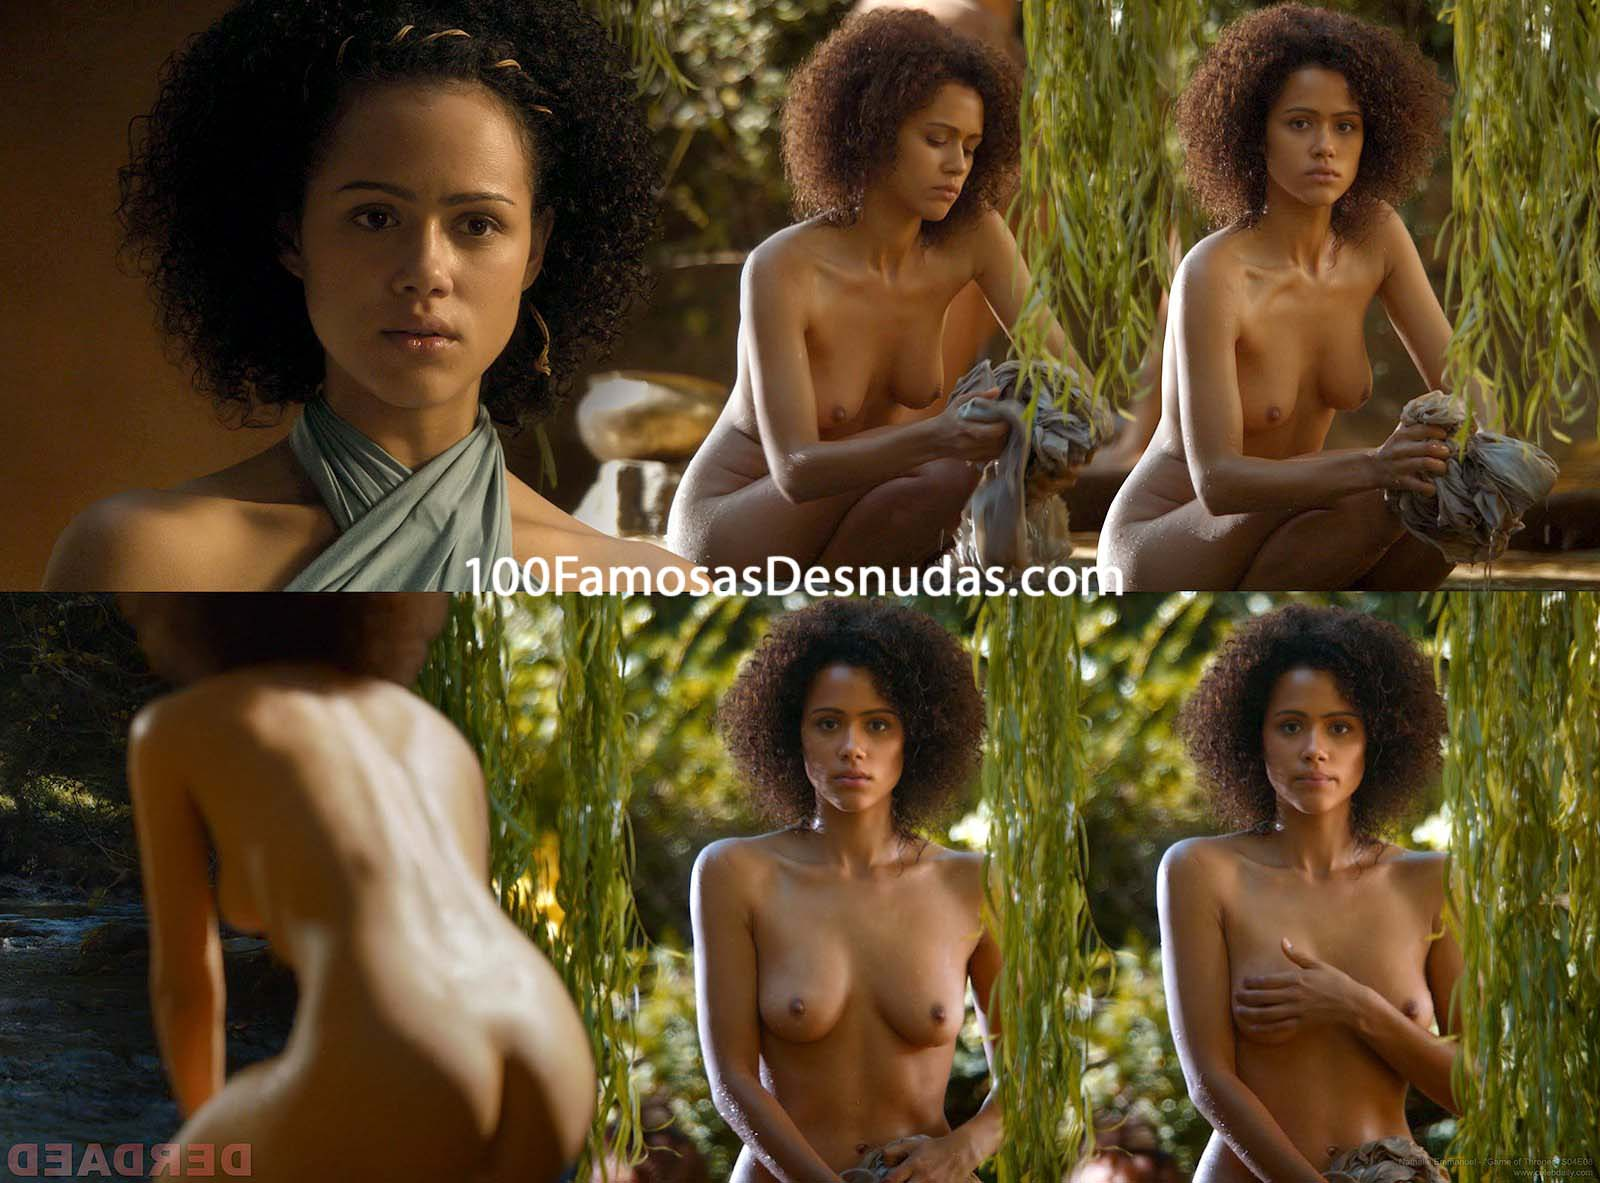 Nathalie Emmanuel - videos  porno -famosas follando - fotos xxx - celebrity xxx (3)